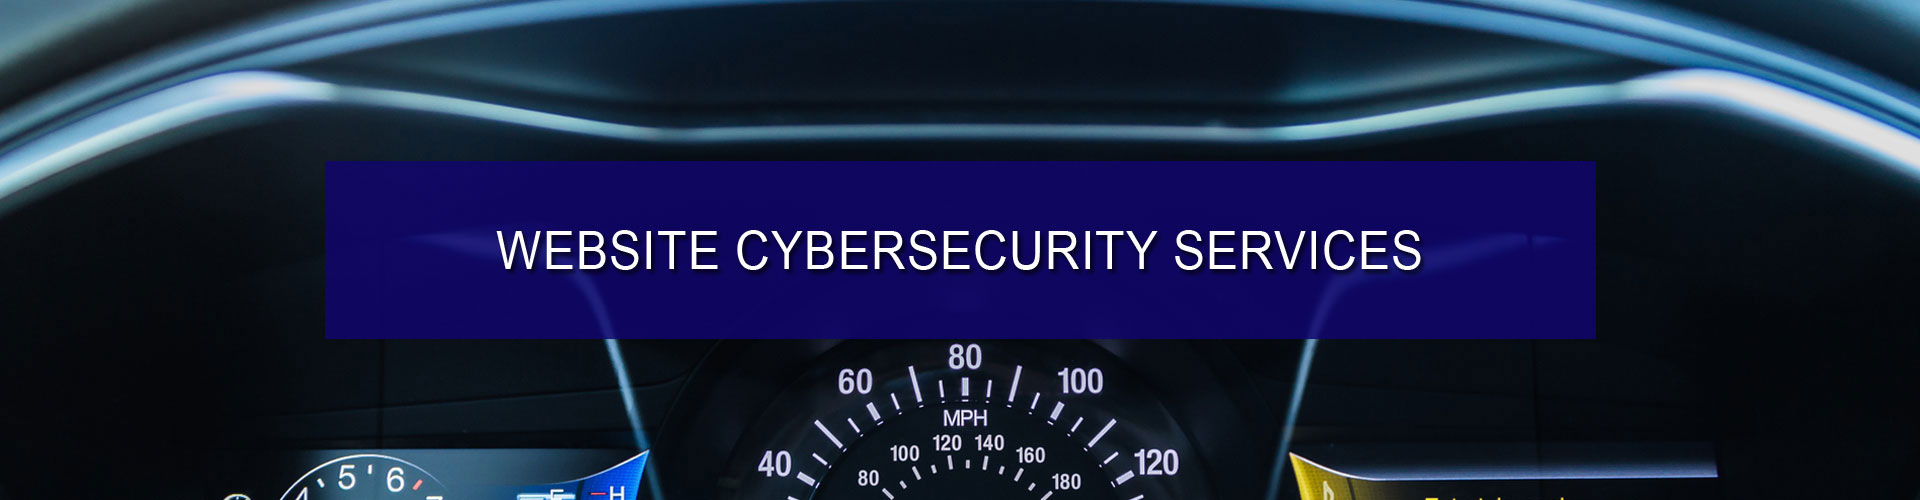 Website Cybersecurity Services